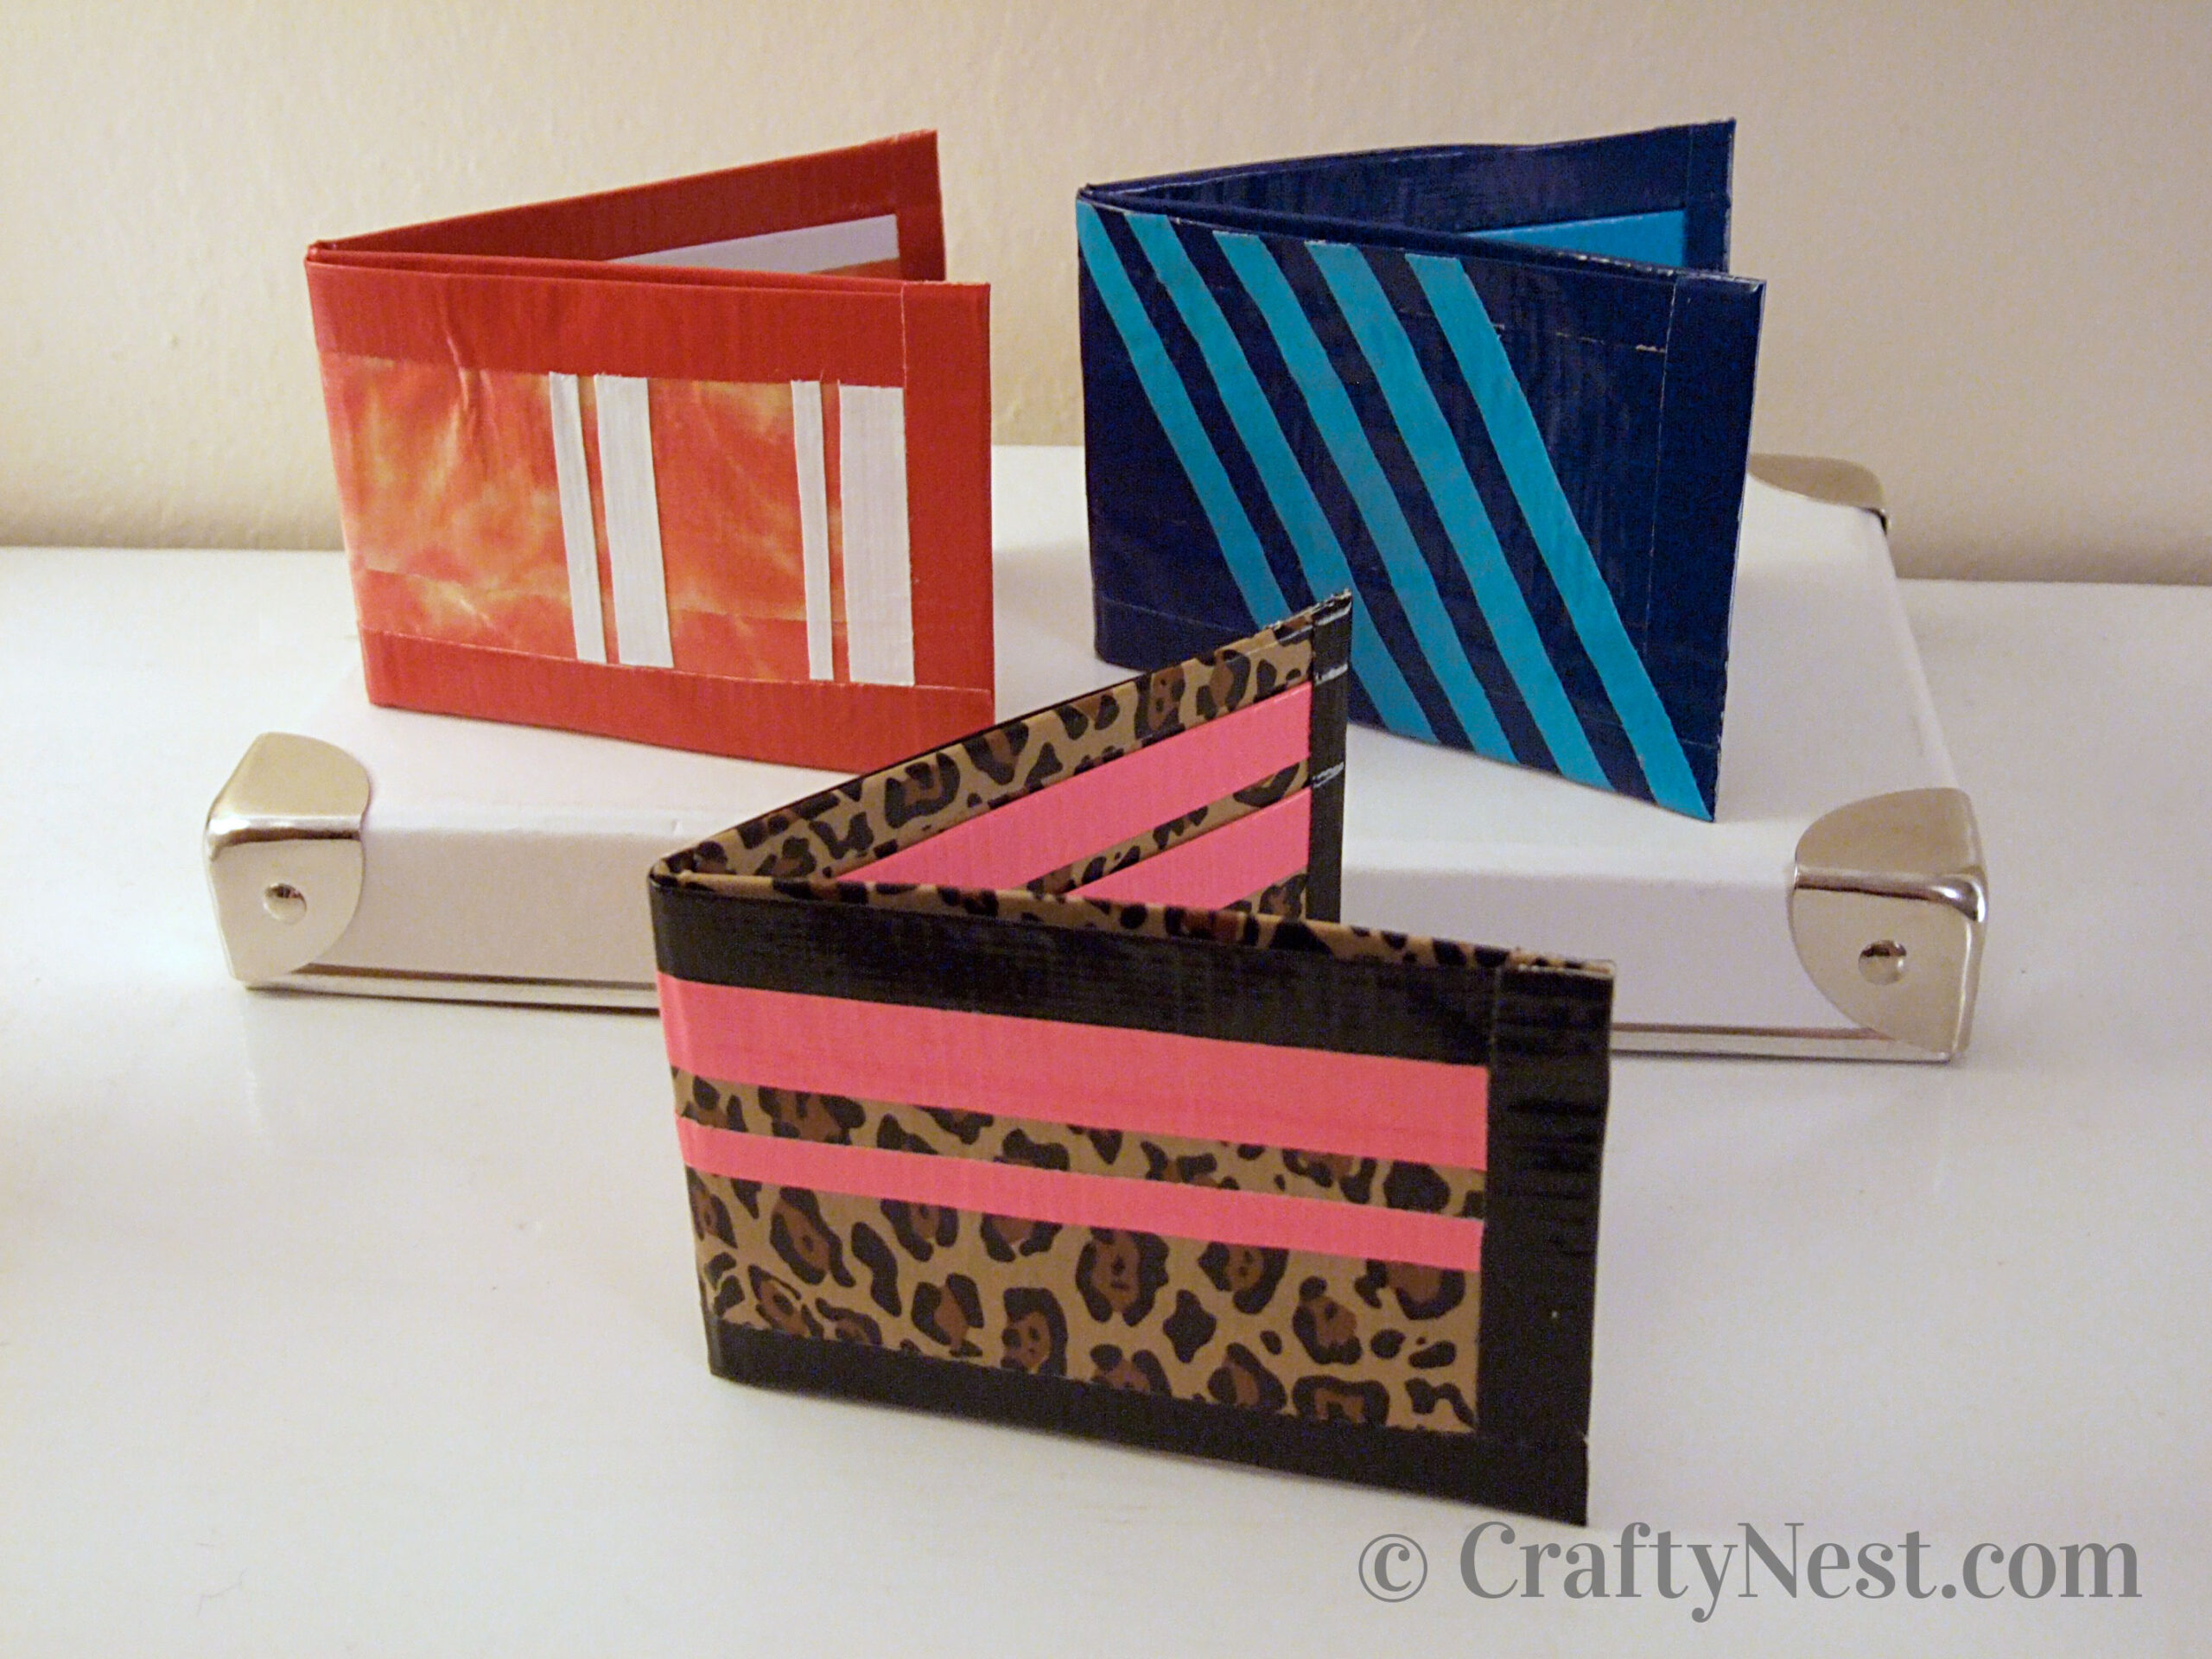 Three handmade duct tape wallets, photo